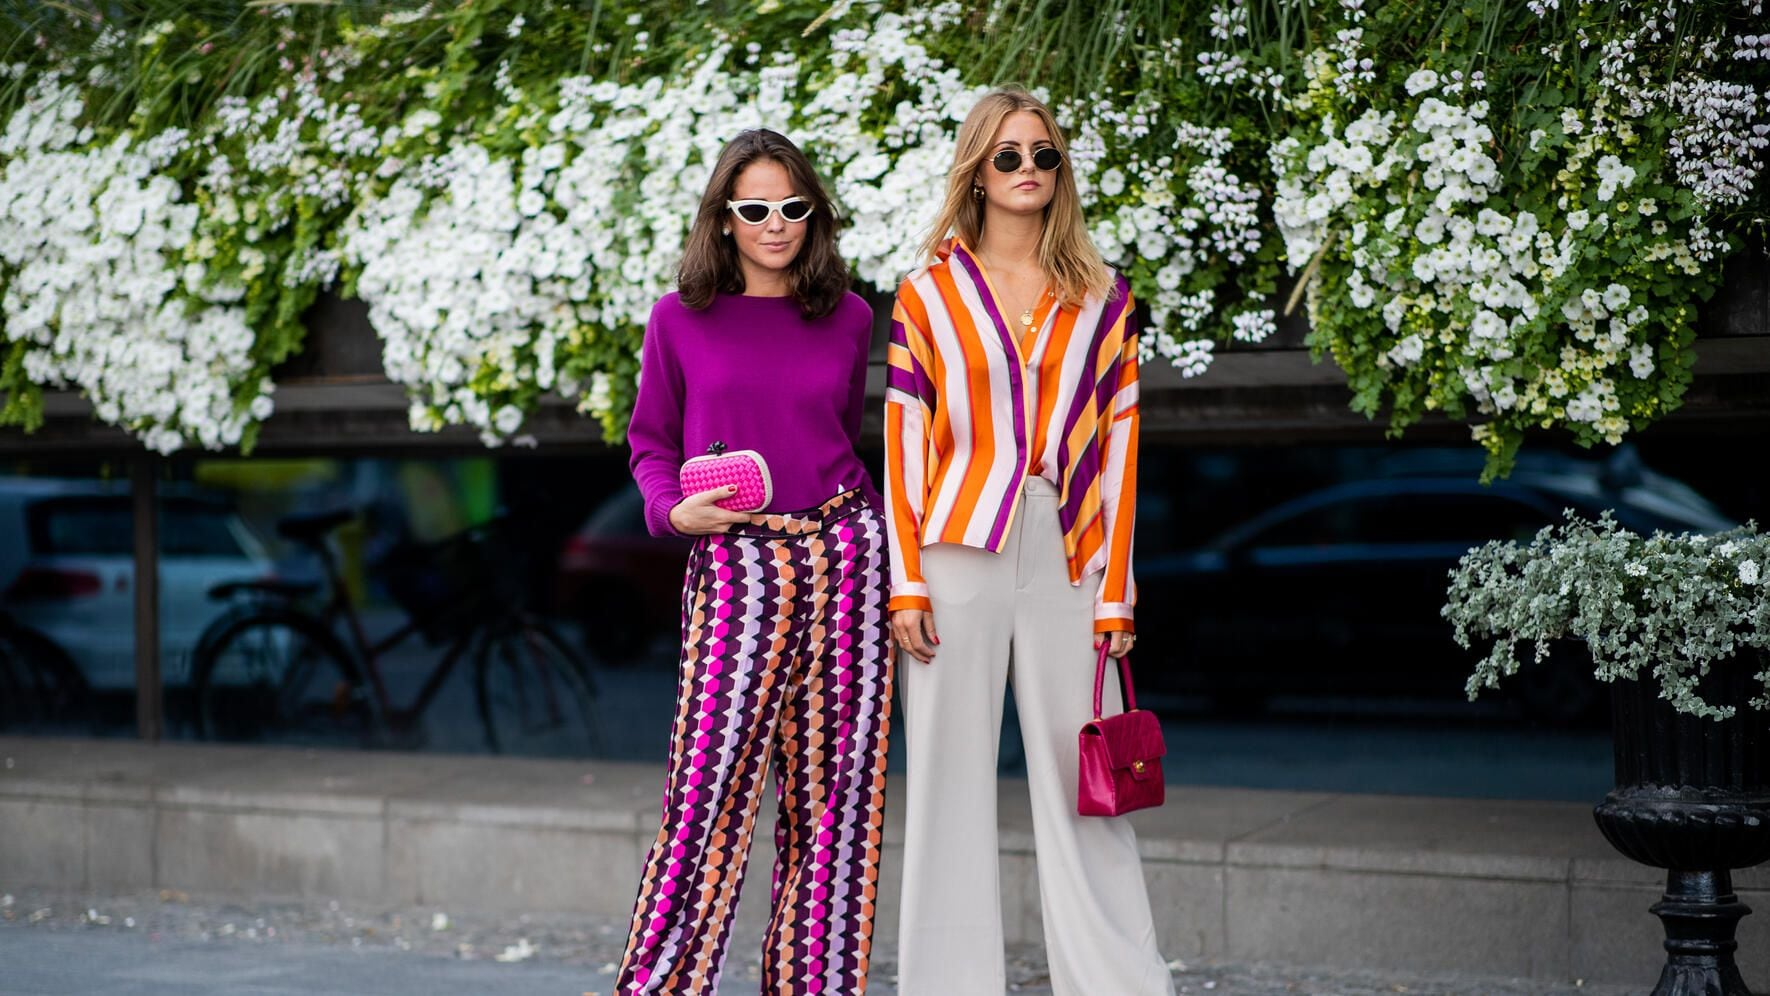 STOCKHOLM, SWEDEN - AUGUST 28: Guests wearing purple knit, multi colored wide leg pants, pink clutch and a guest wearing striped button shirt, wide leg pants, red Chanel bag seen during Stockholm Runway SS19 on August 28, 2018 in Stockholm, Sweden. (Photo by Christian Vierig/Getty Images)